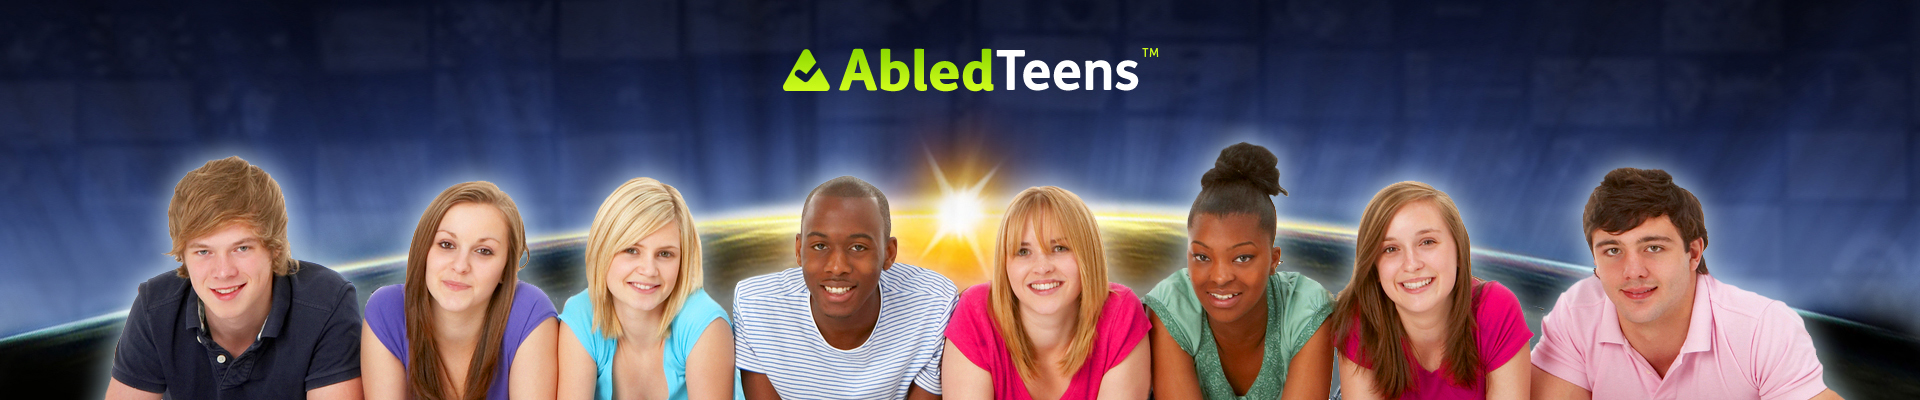 AbledTeens Banner shows a group of teenagers side-by-side facing the camera with the view of Earth's sunrise from space in the background.